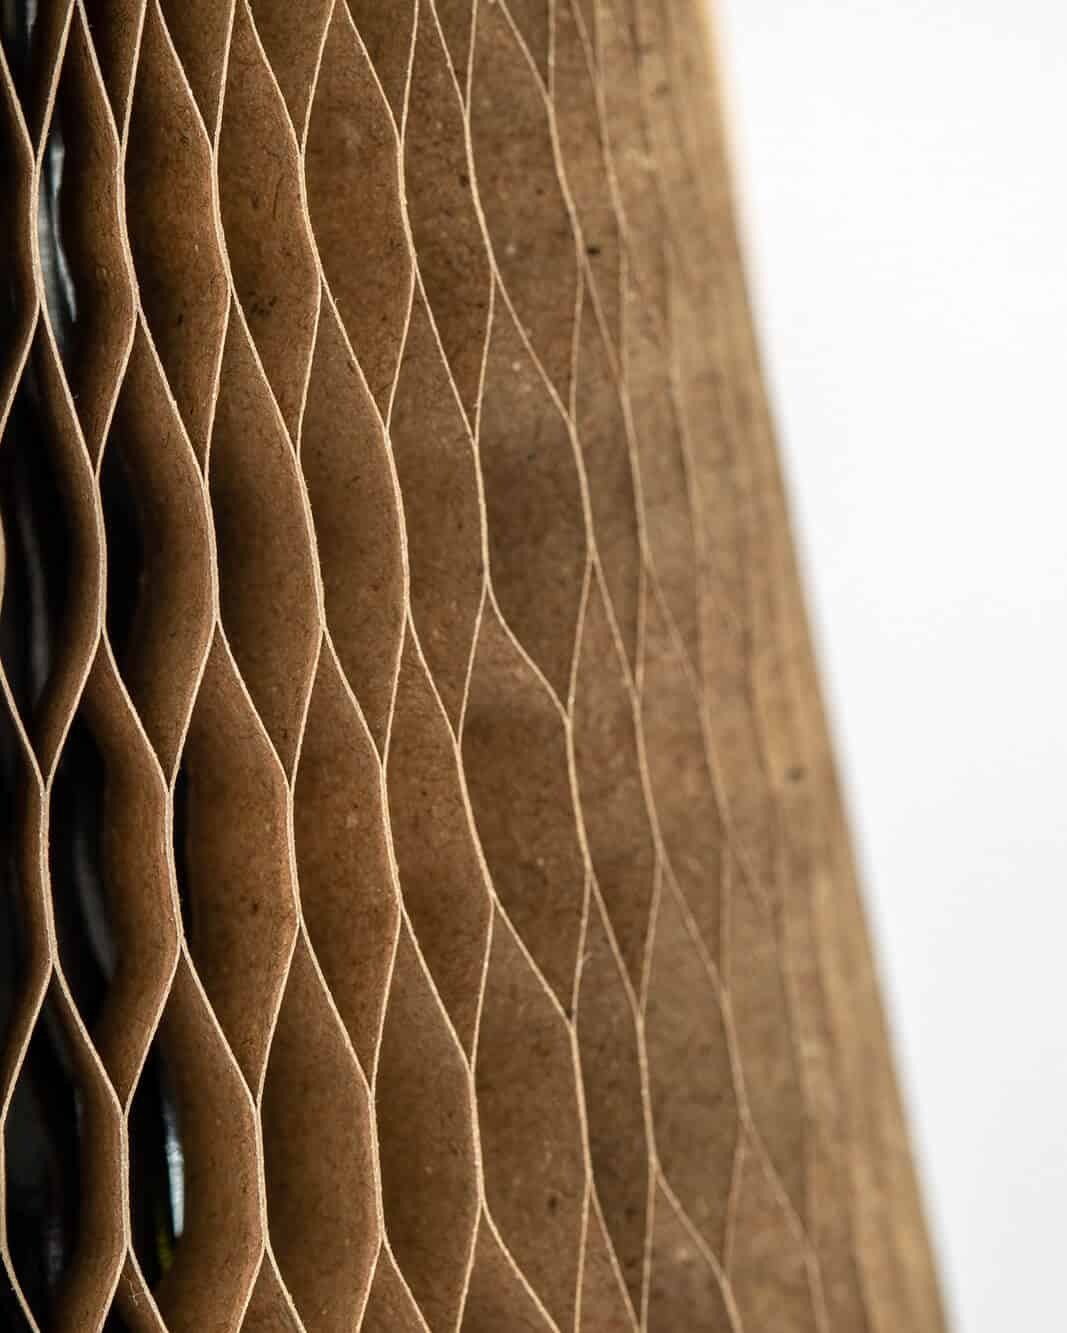 Honeycomb material used in Flexi-Hex sustainable packaging